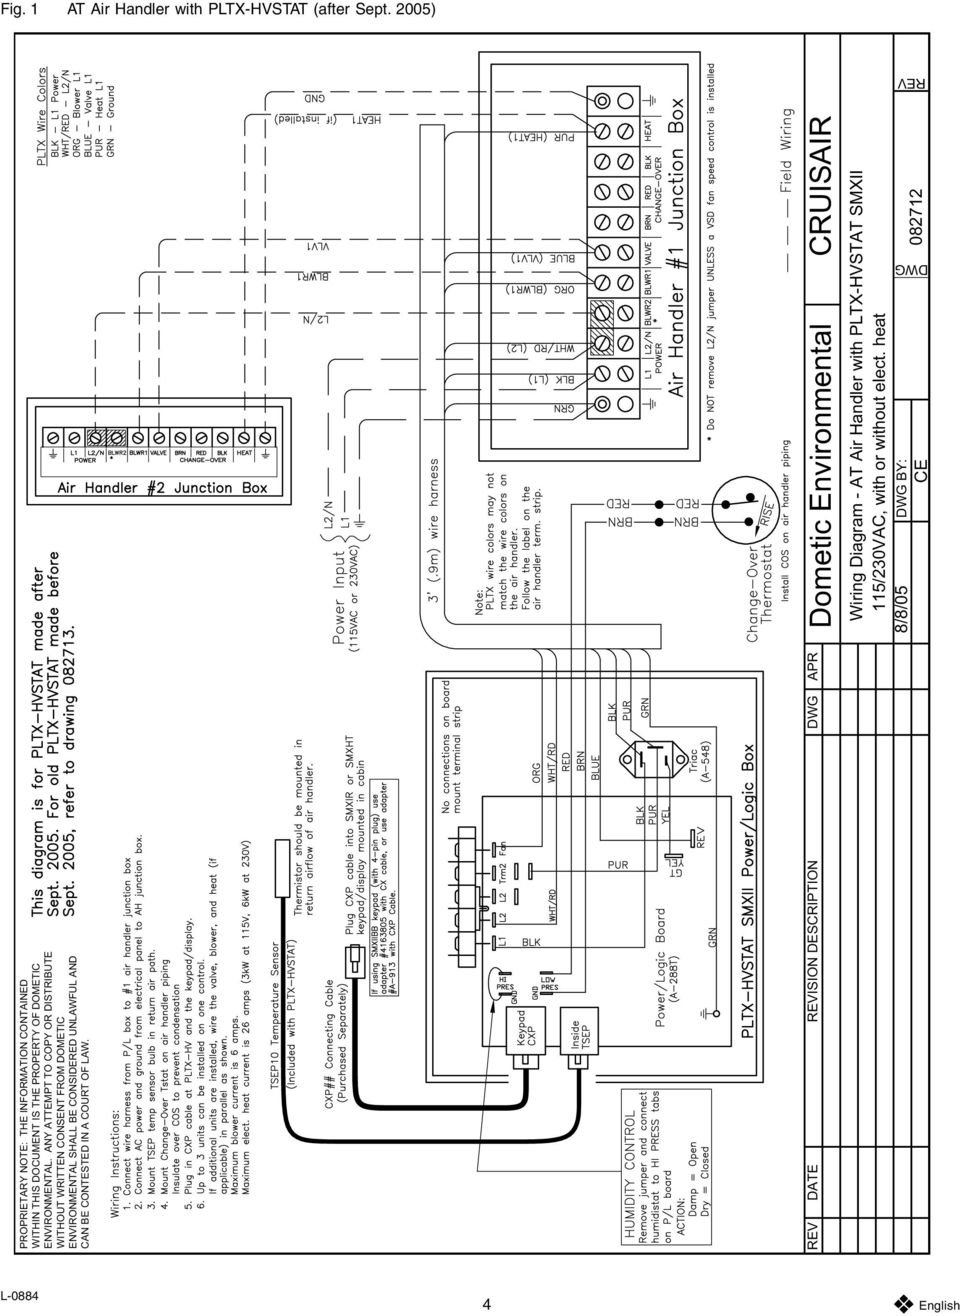 rheem heat pump thermostat wiring diagram rheem rheem heat pump air handler wiring diagram solidfonts on rheem heat pump thermostat wiring diagram